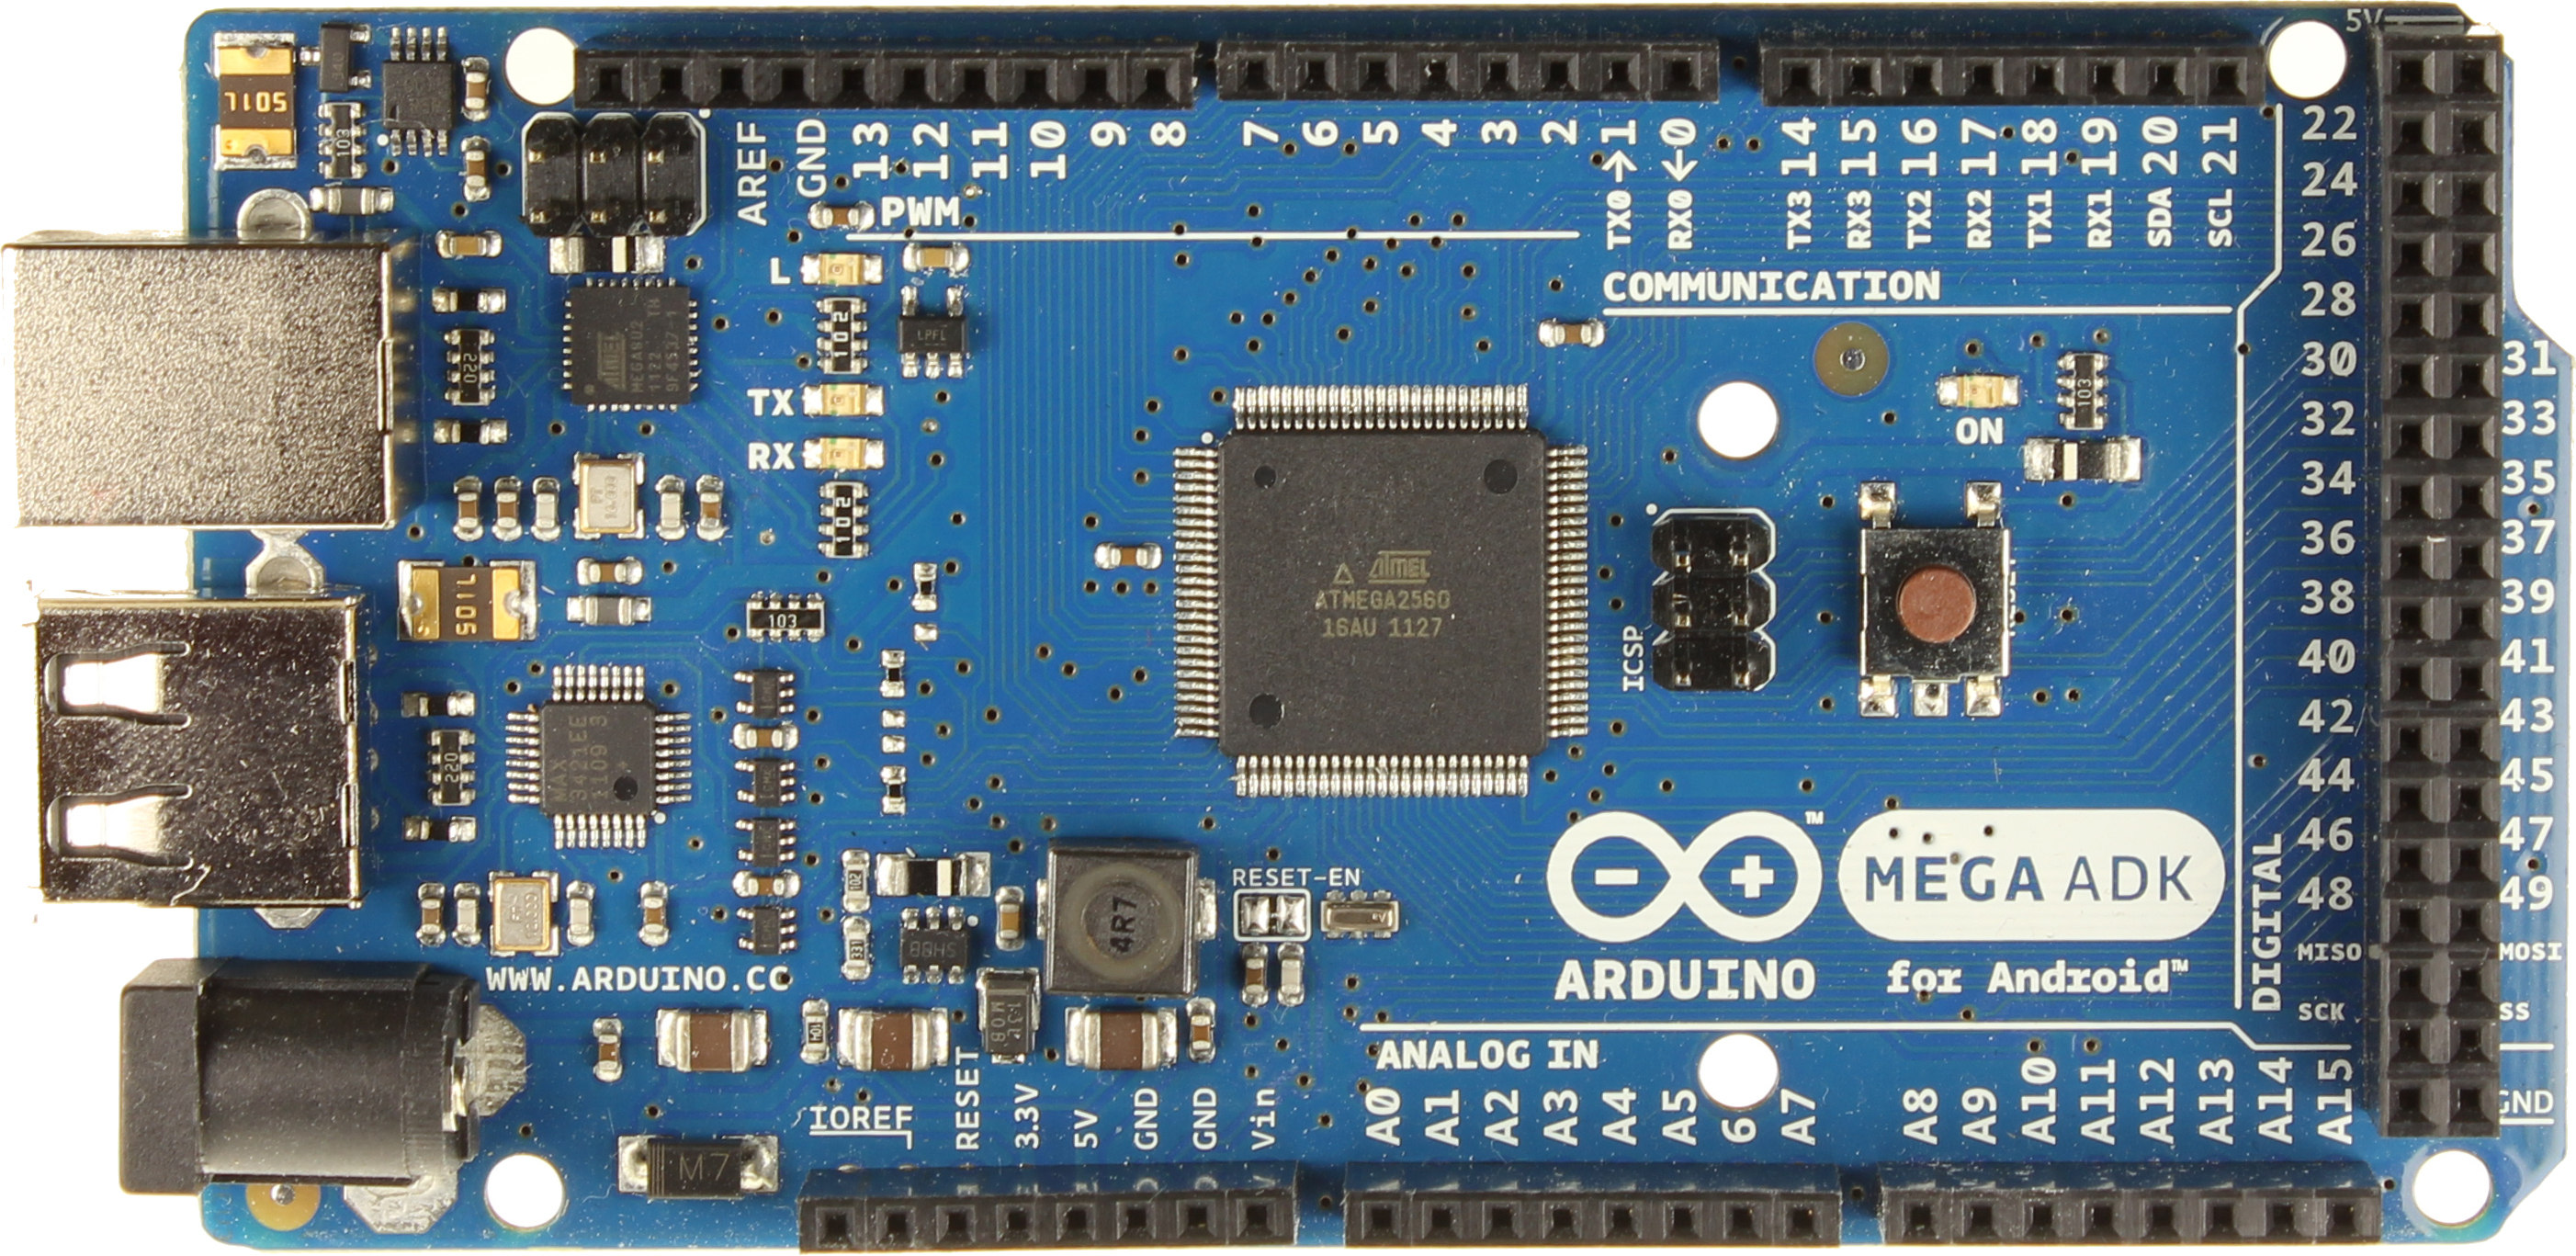 Arduino mega 2560 rev 3 driver download